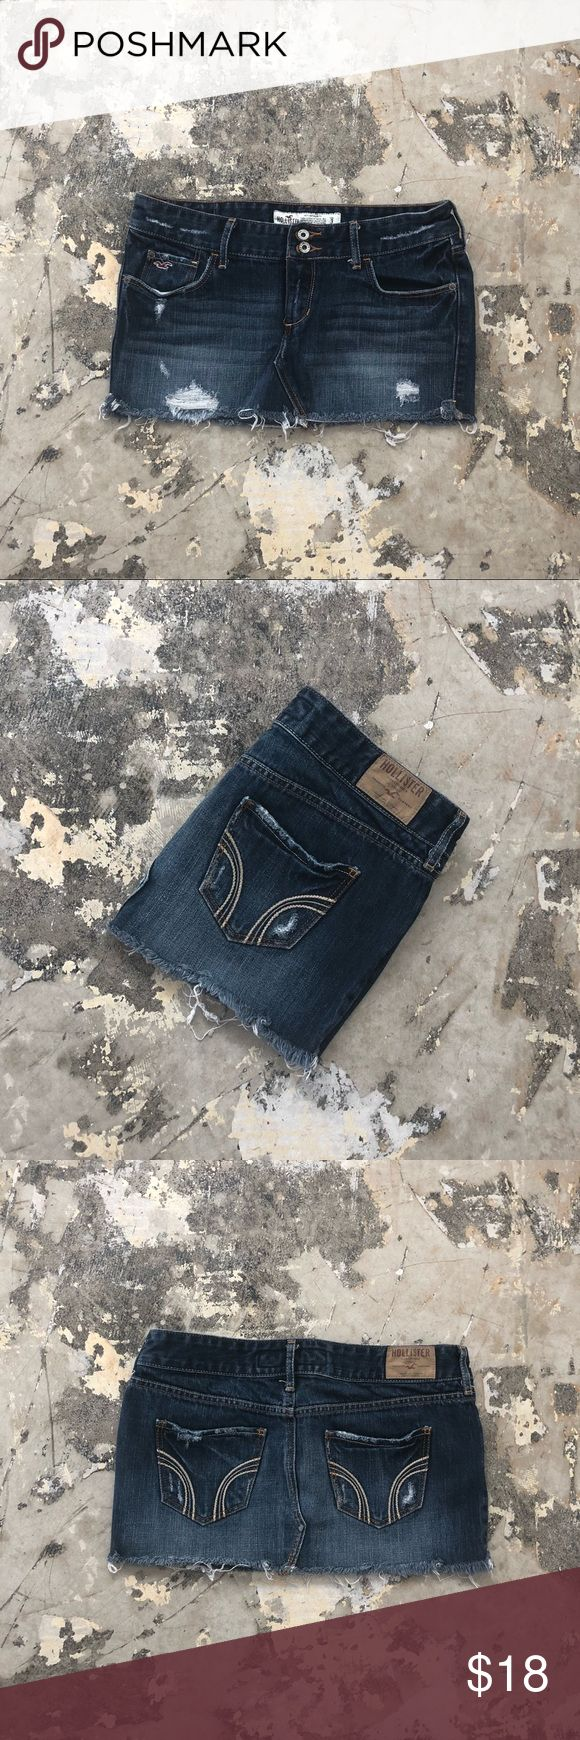 🖤👊🏻FLASH SALE 🖤👊🏻 Bringing back the 90's!!! A jean skirt is a must have this year! This skirt has an awesome blue jean tone with distressed spots to give you a casual I don't care what you think style! :) Very soft fabric. Hollister Skirts Mini